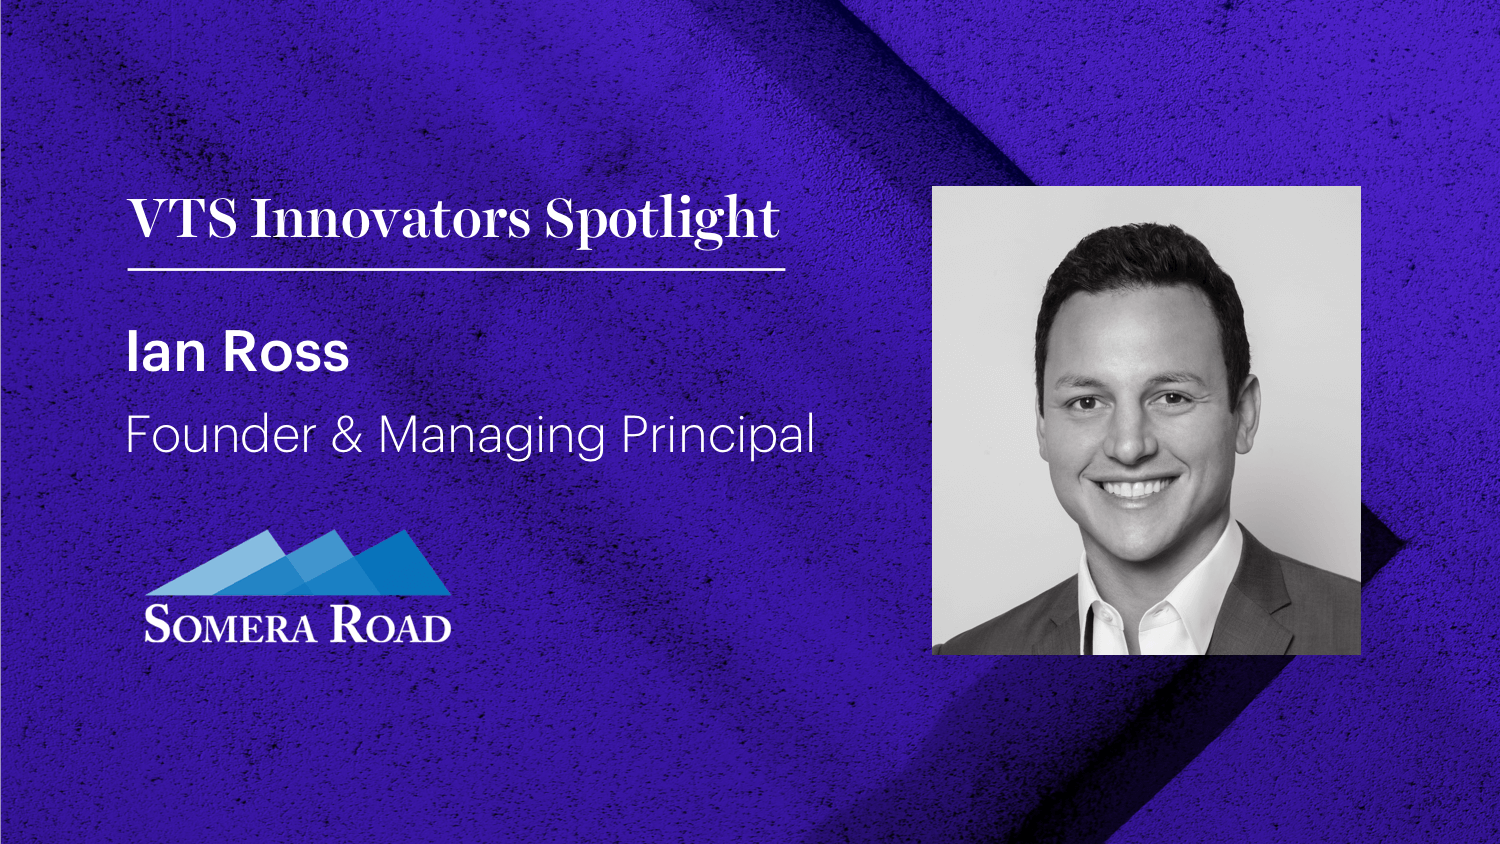 Somera Road, Founder and Managing Principal, Ian Ross on Using Technology to Do Business Smarter and Faster